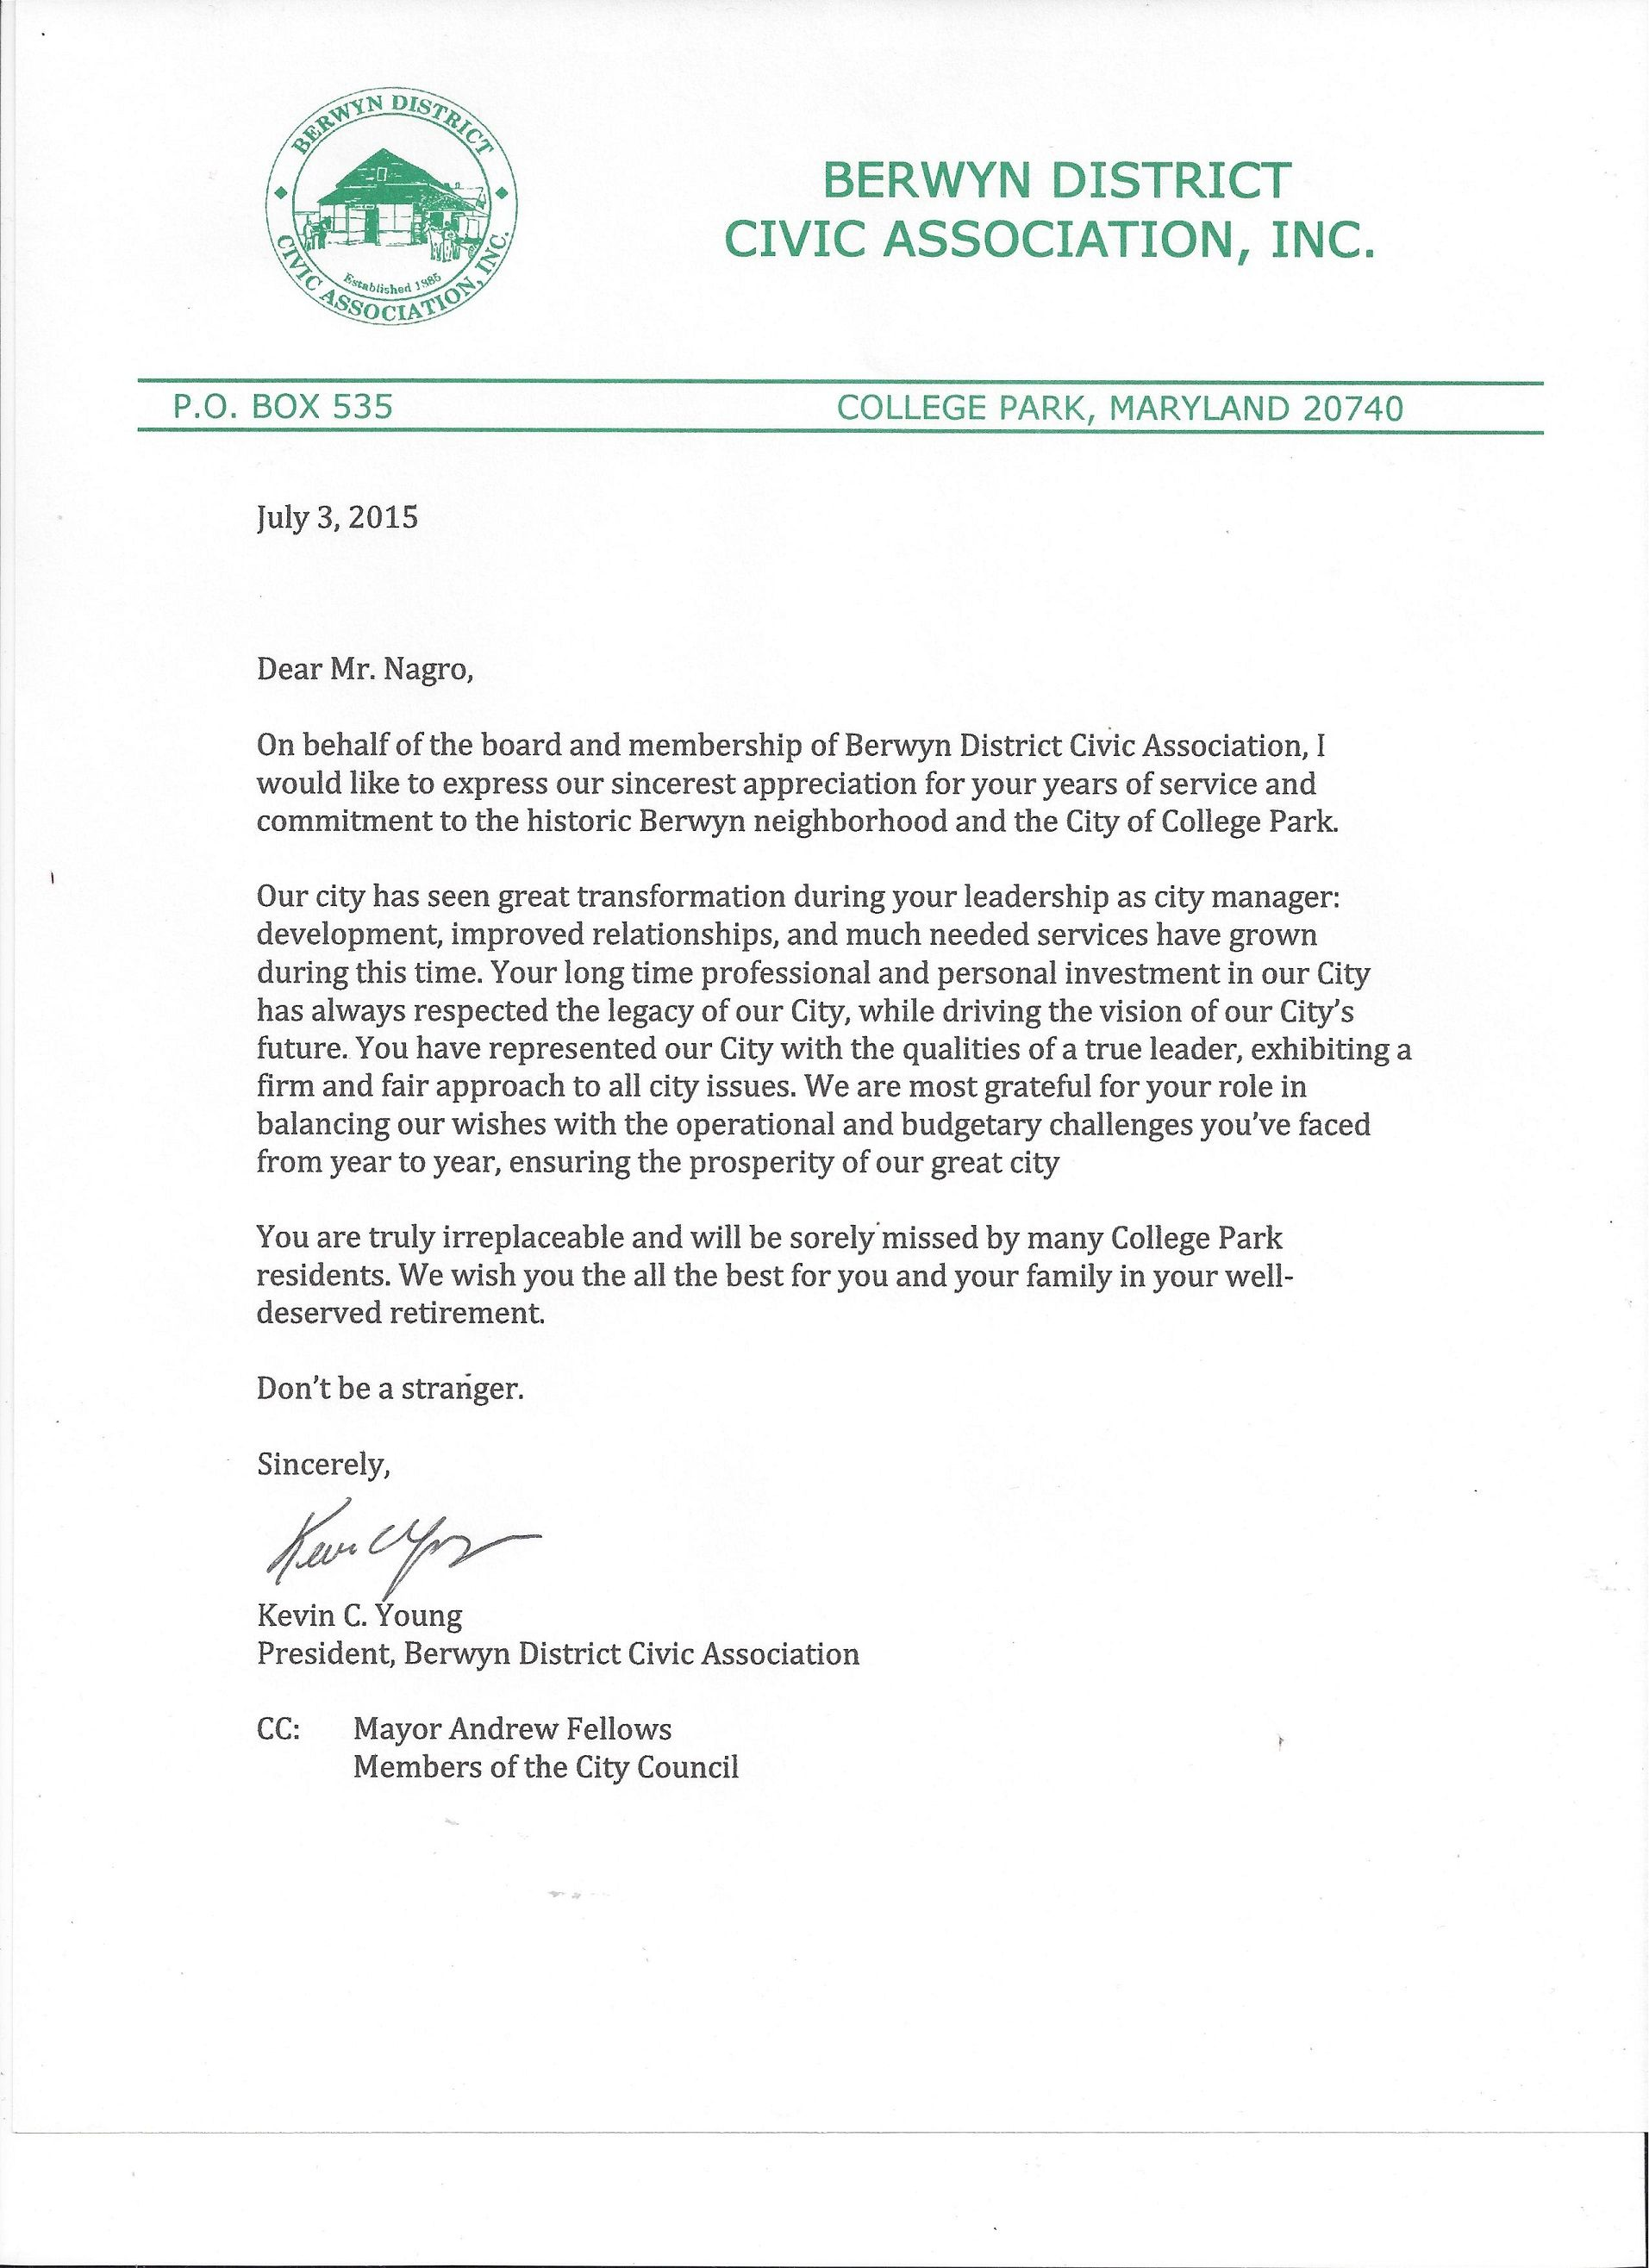 Community Appreciation Letter Sent Joe Nagro For His Years